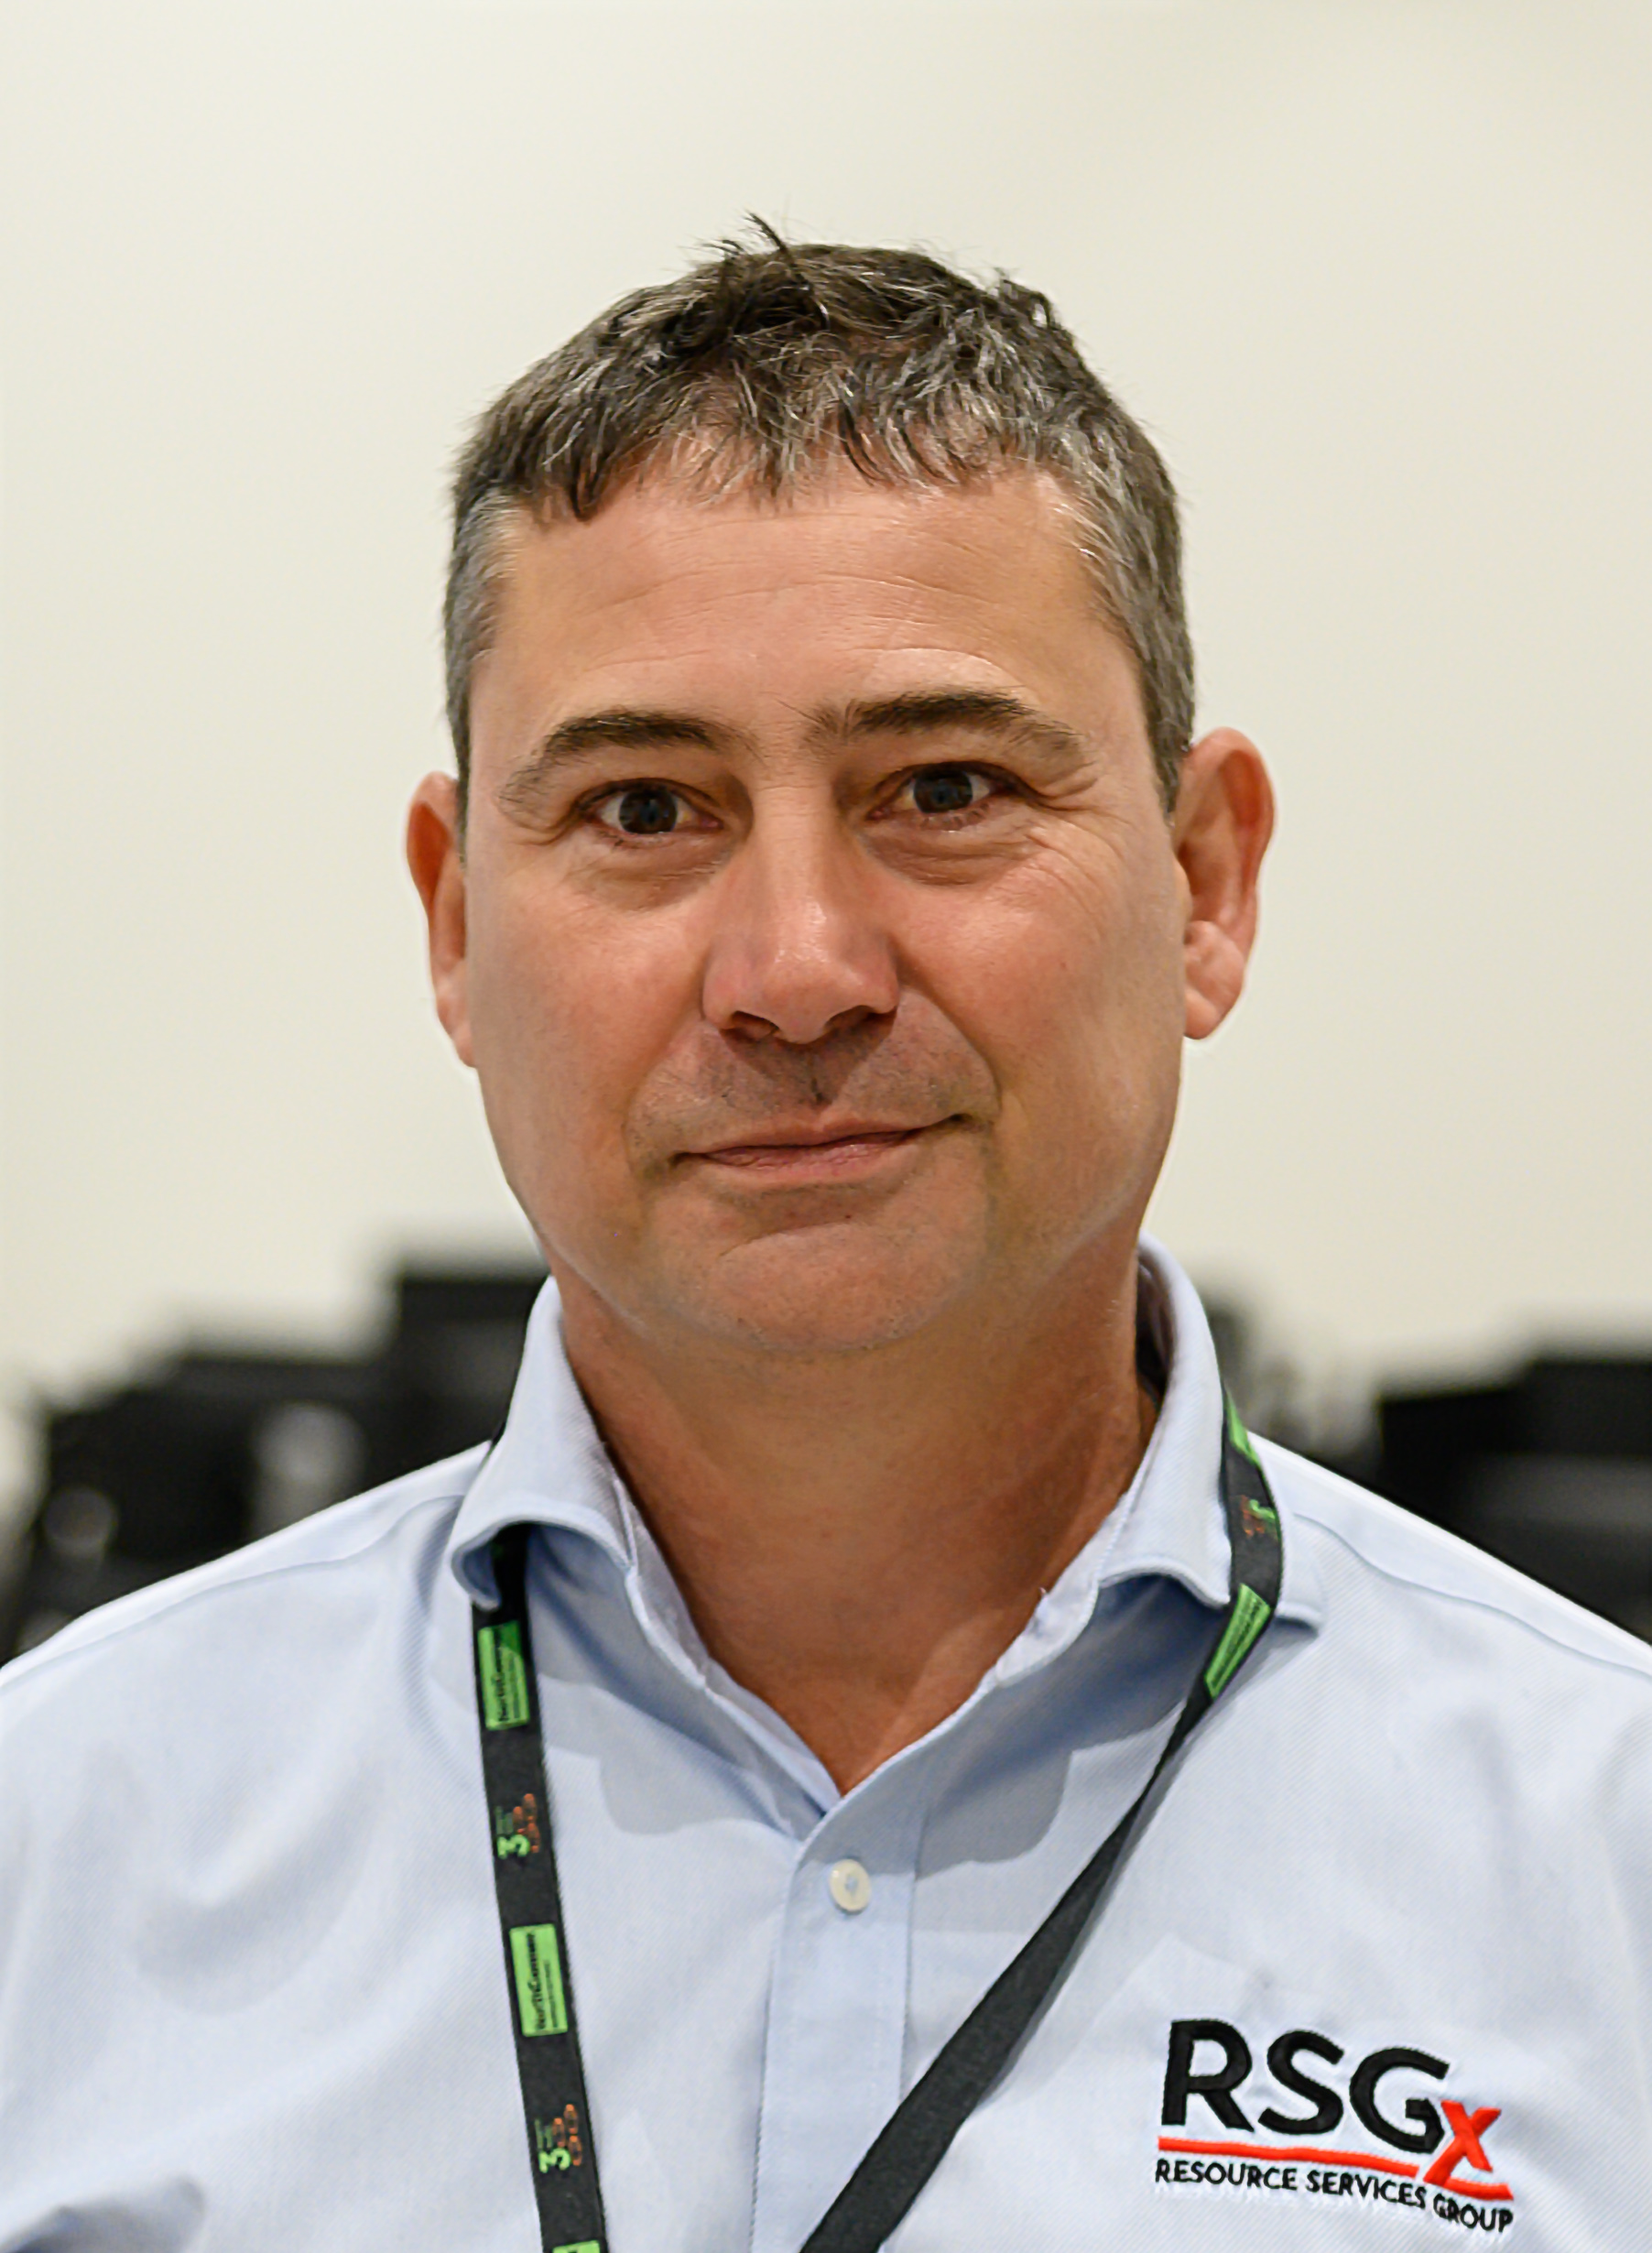 RSGx welcome Brendon Phillips as E&I Technical Manager